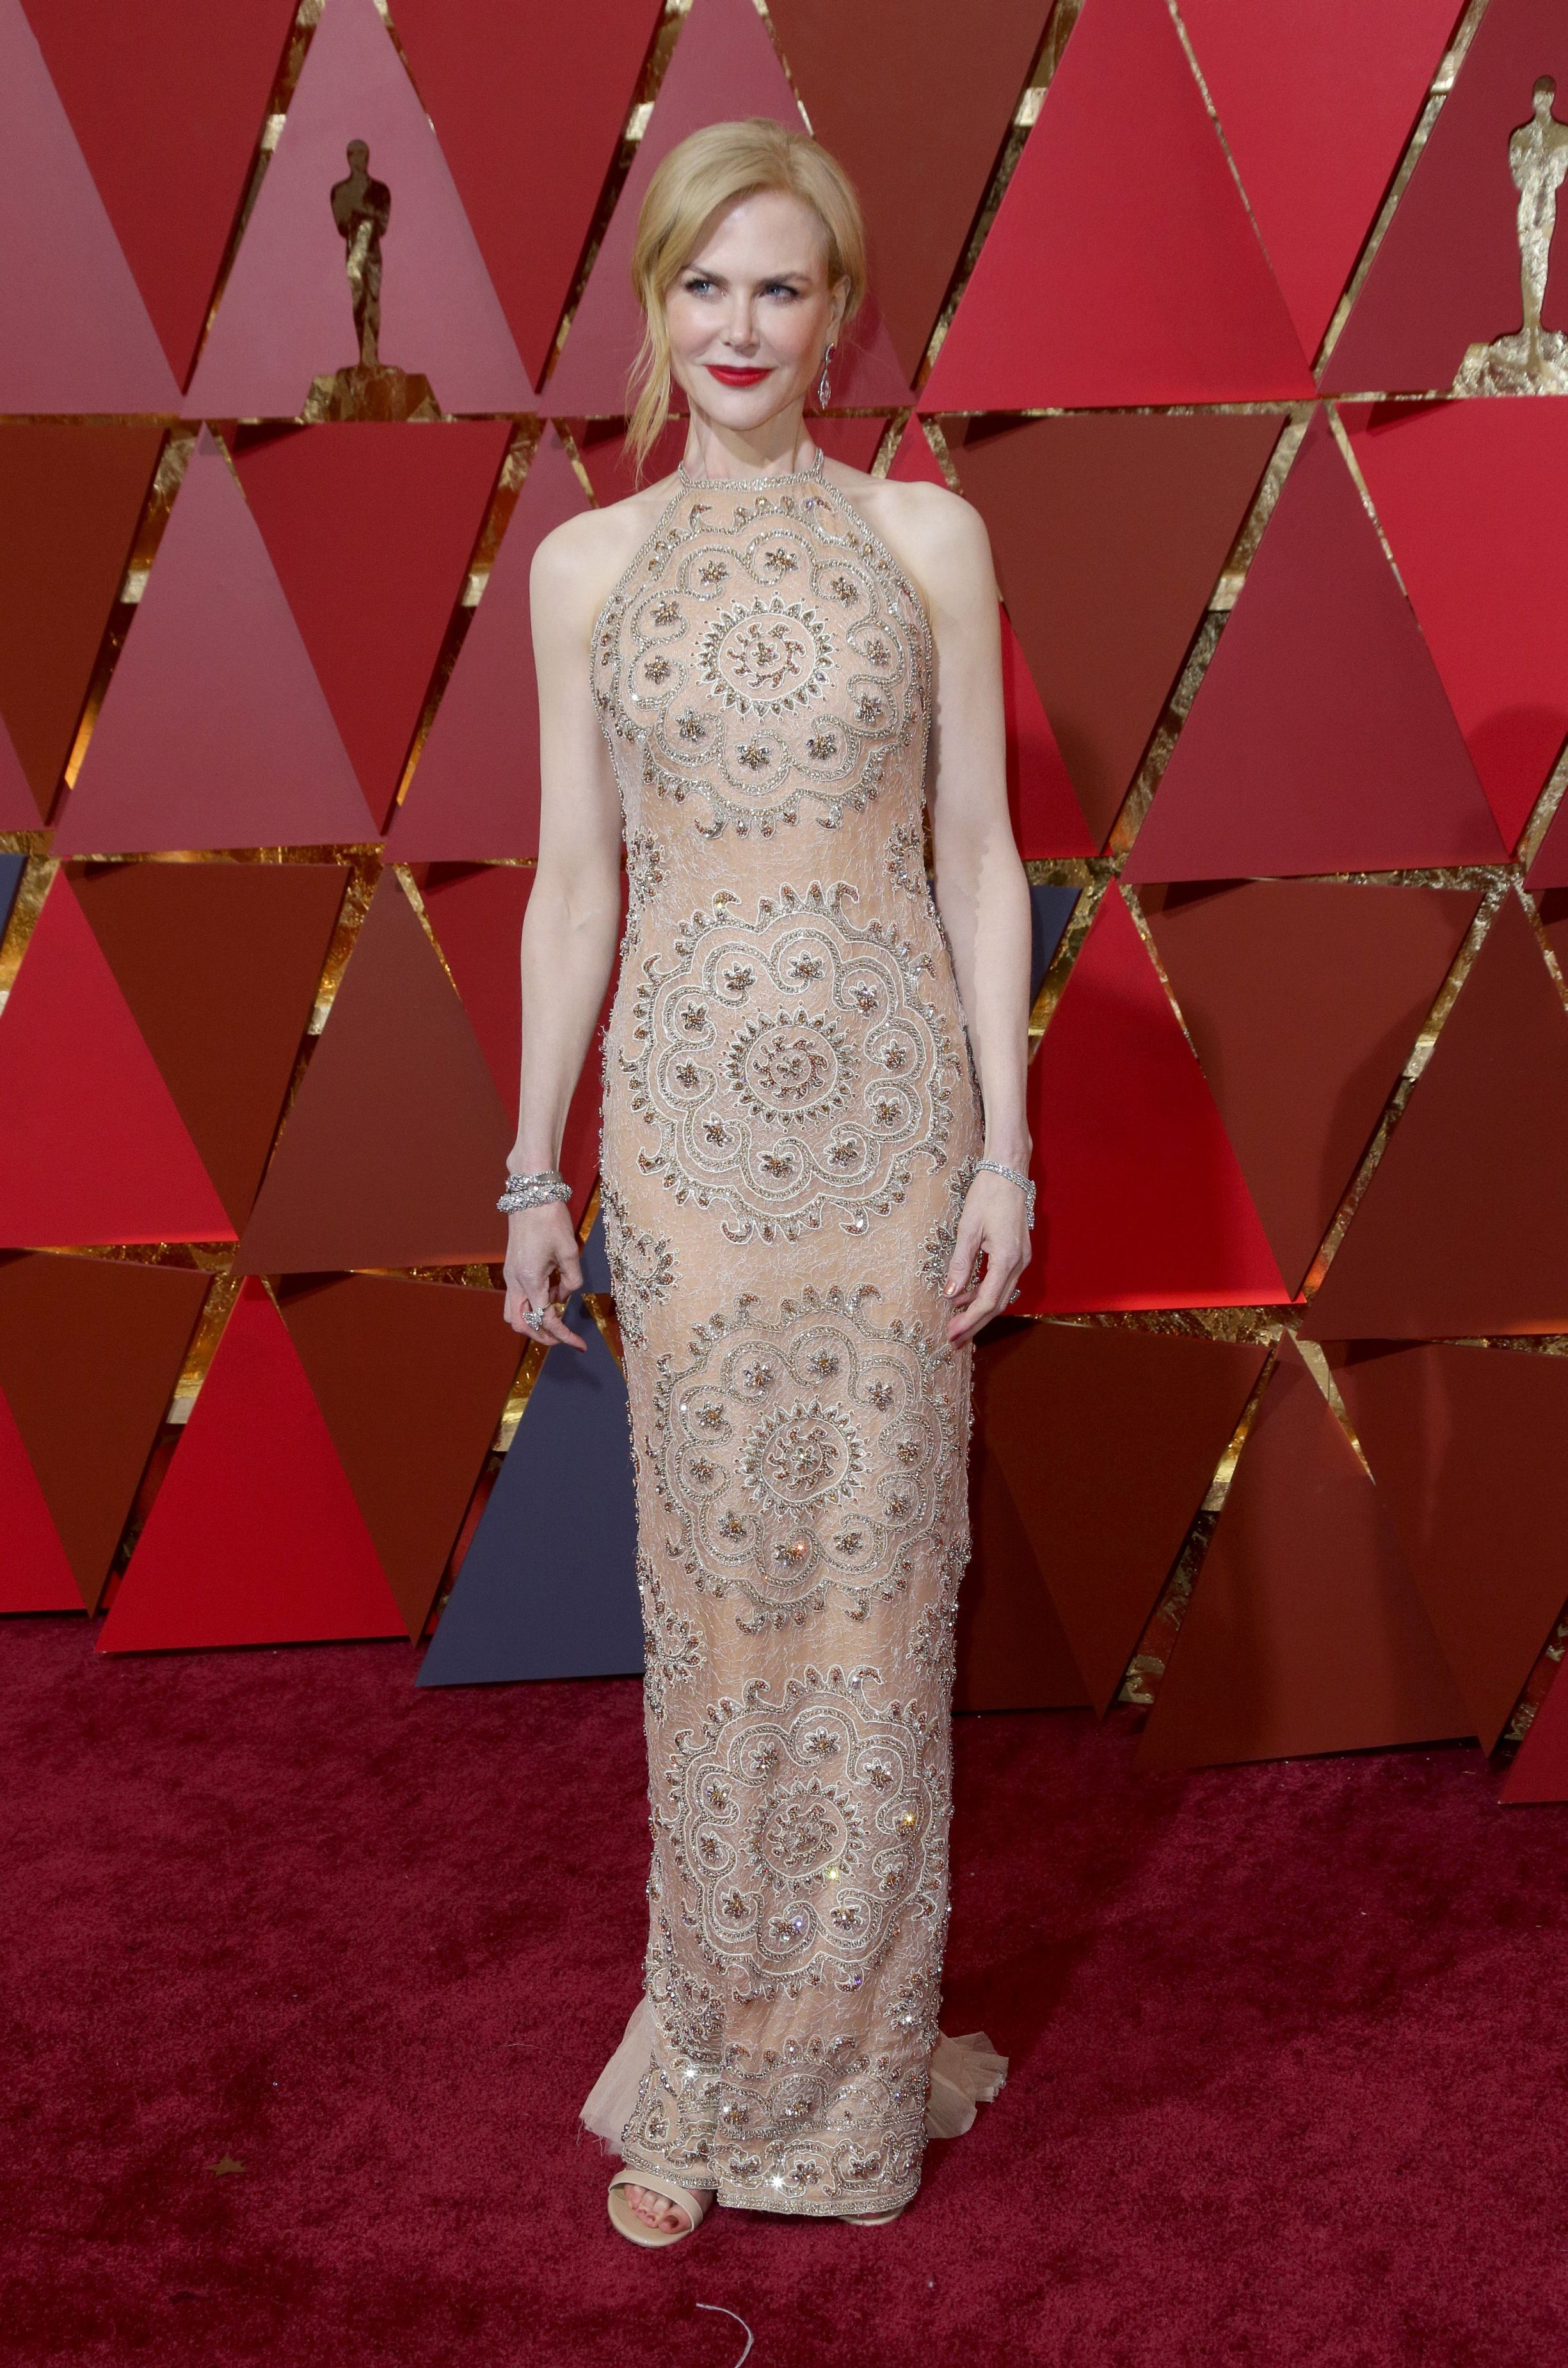 Mandatory Credit: Photo by Jim Smeal/BEI/Shutterstock (8434881ol) Nicole Kidman 89th Annual Academy Awards, Arrivals, Los Angeles, USA - 26 Feb 2017